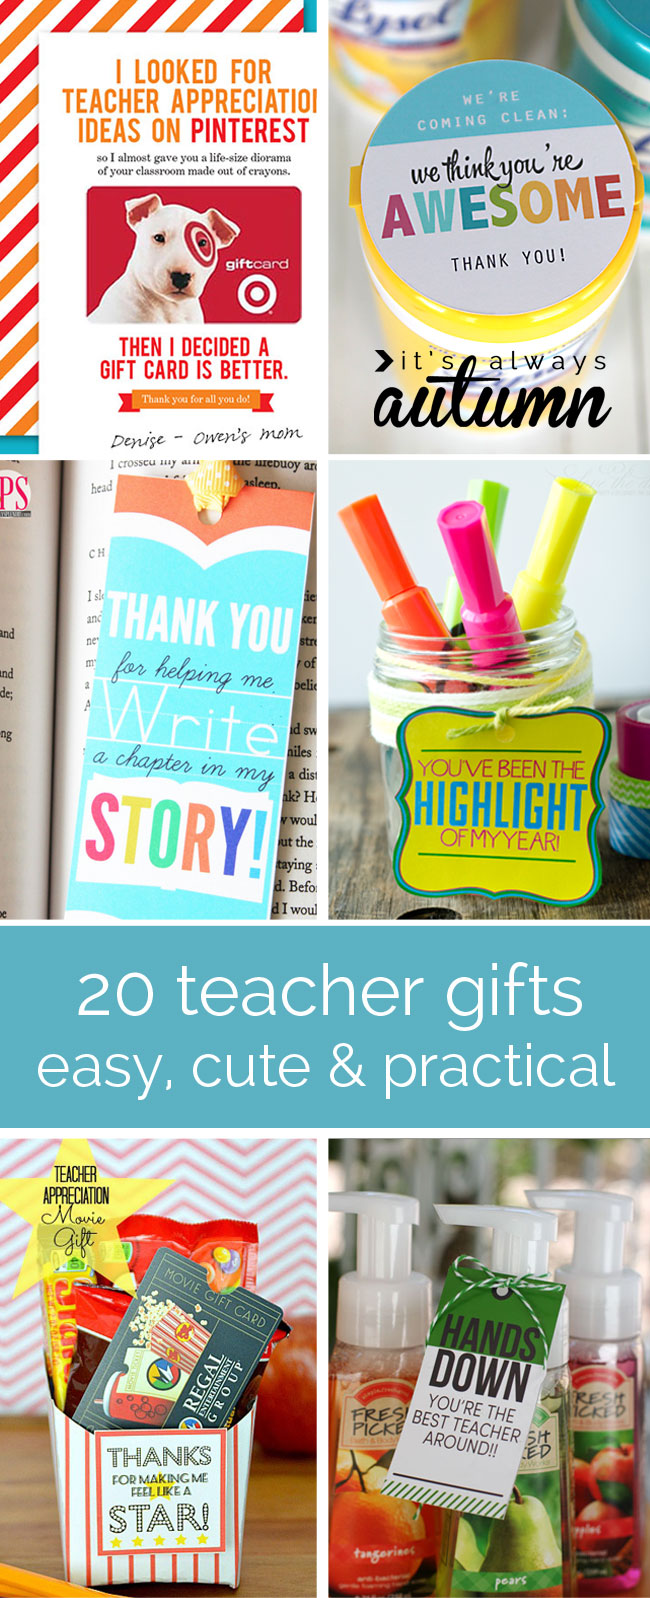 cheap easy cute practical teacher gifts